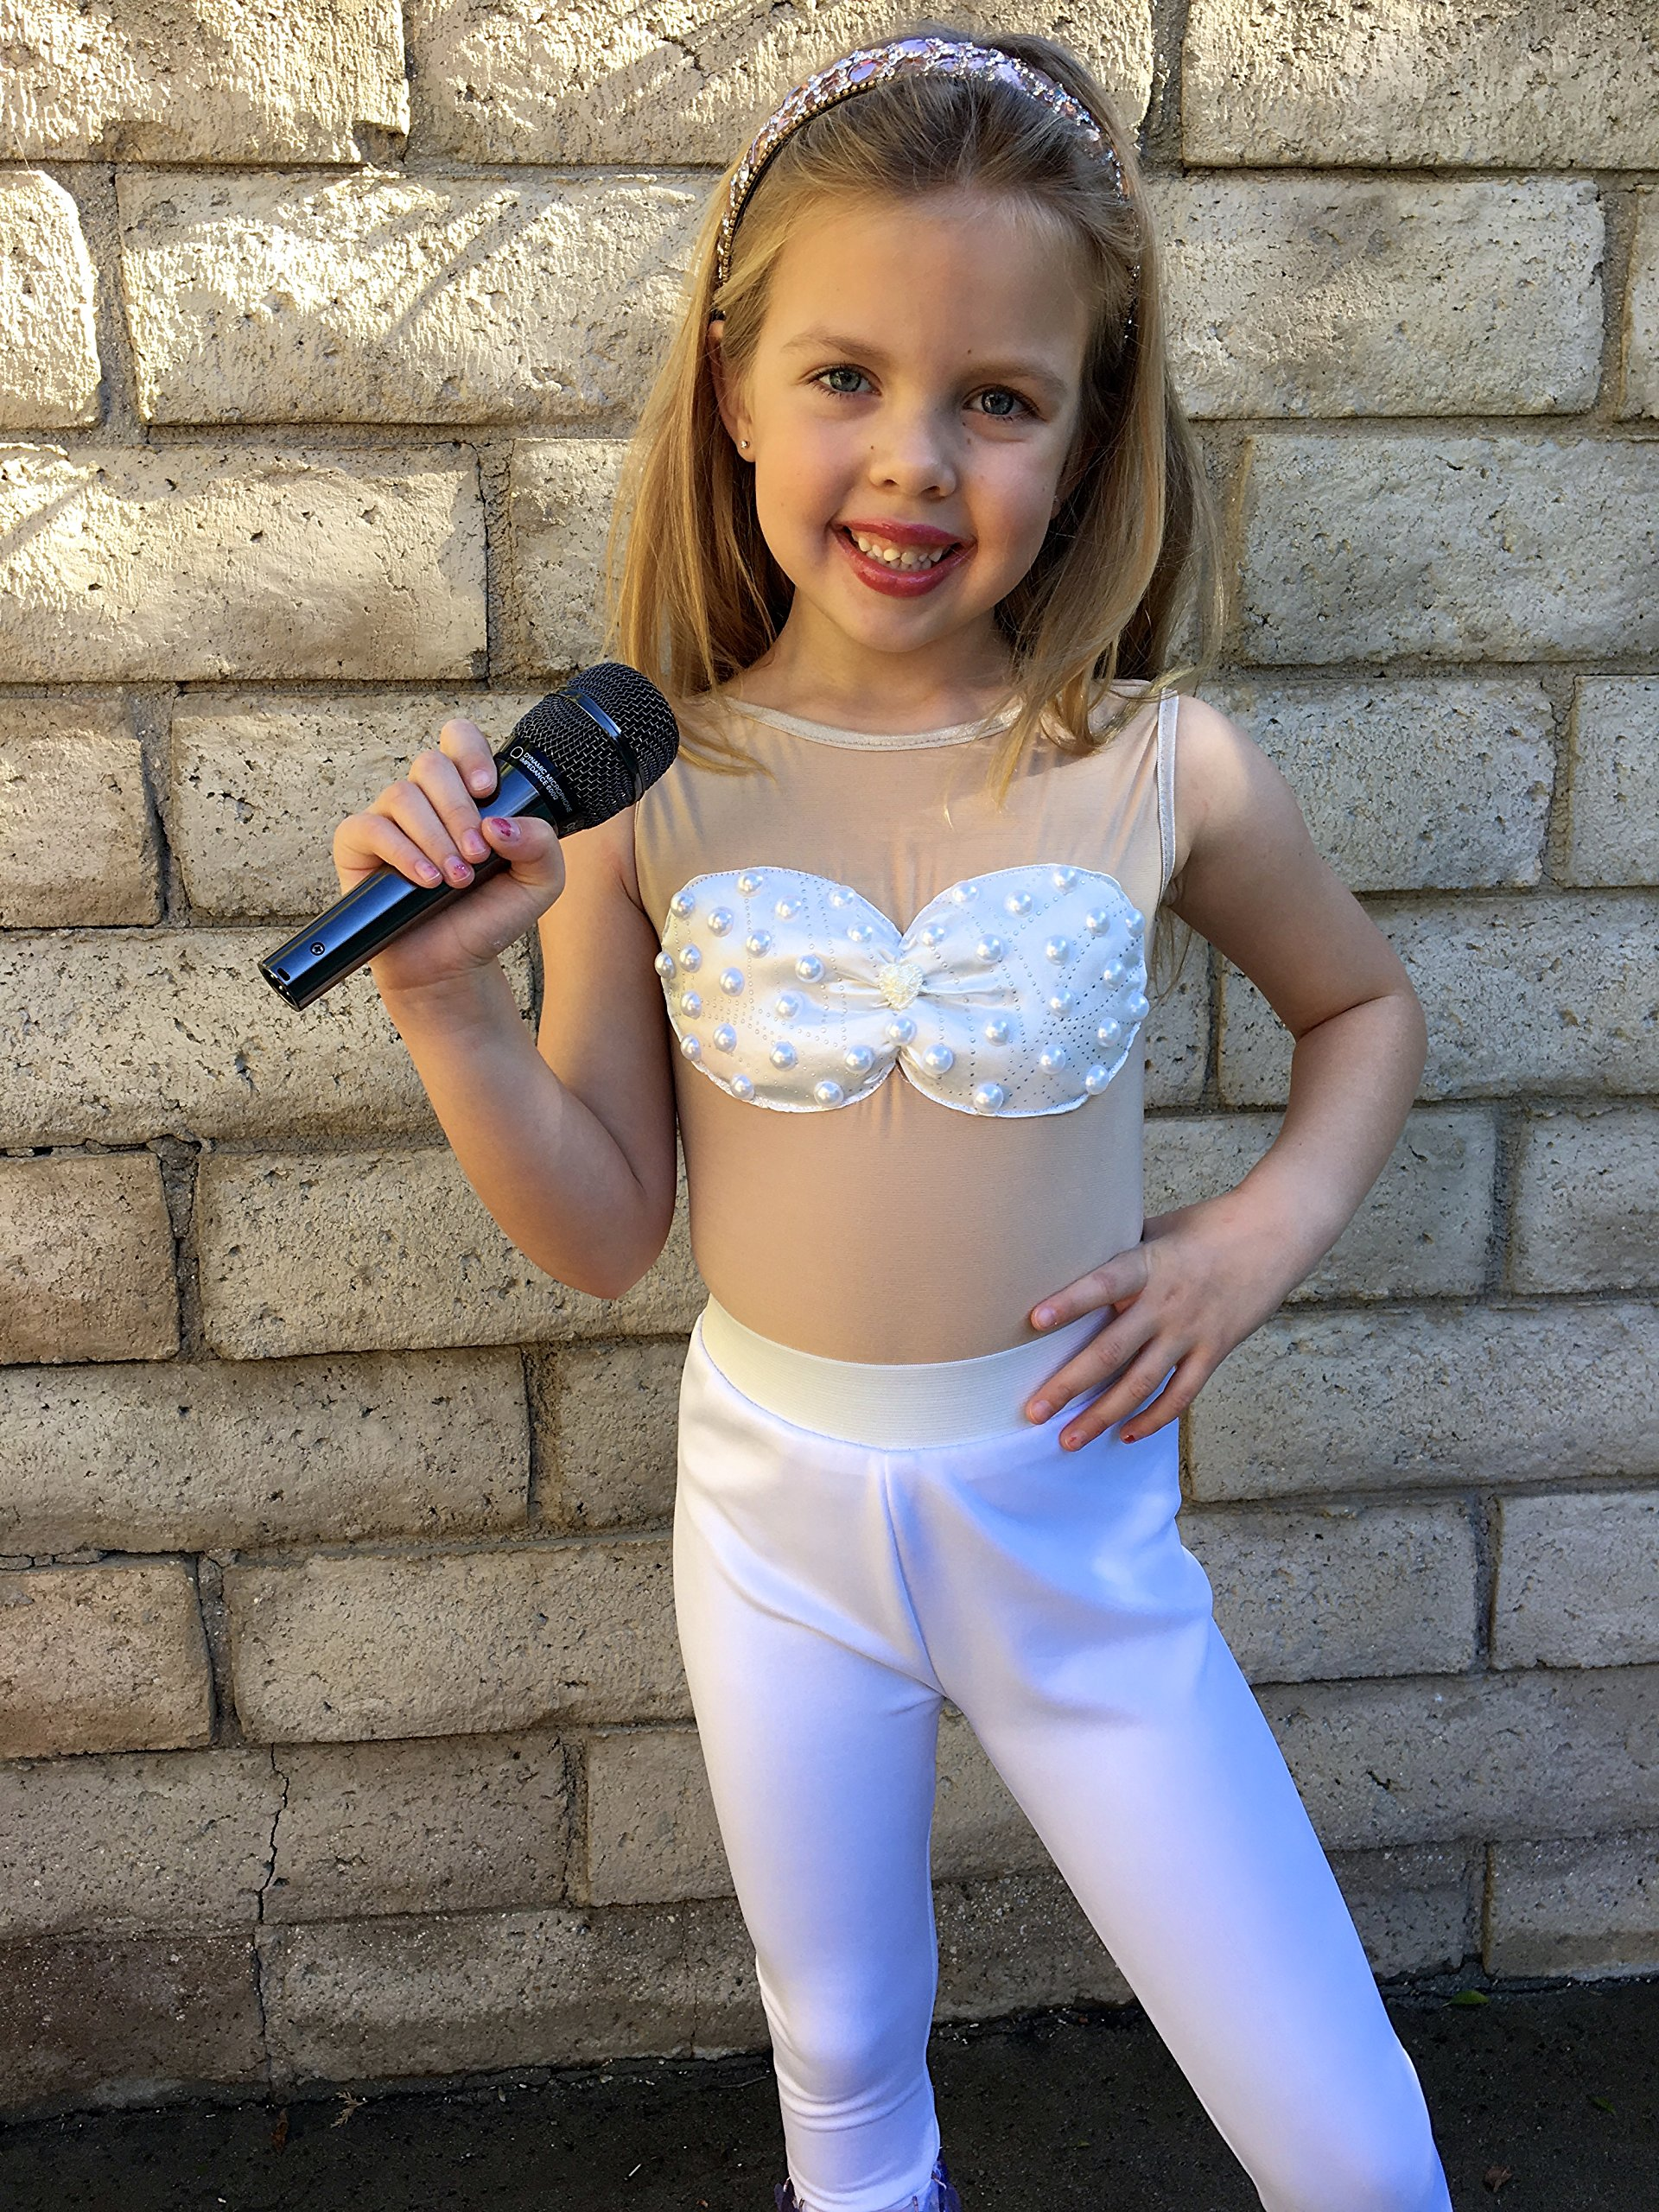 Selena Costume Girls size White outfit